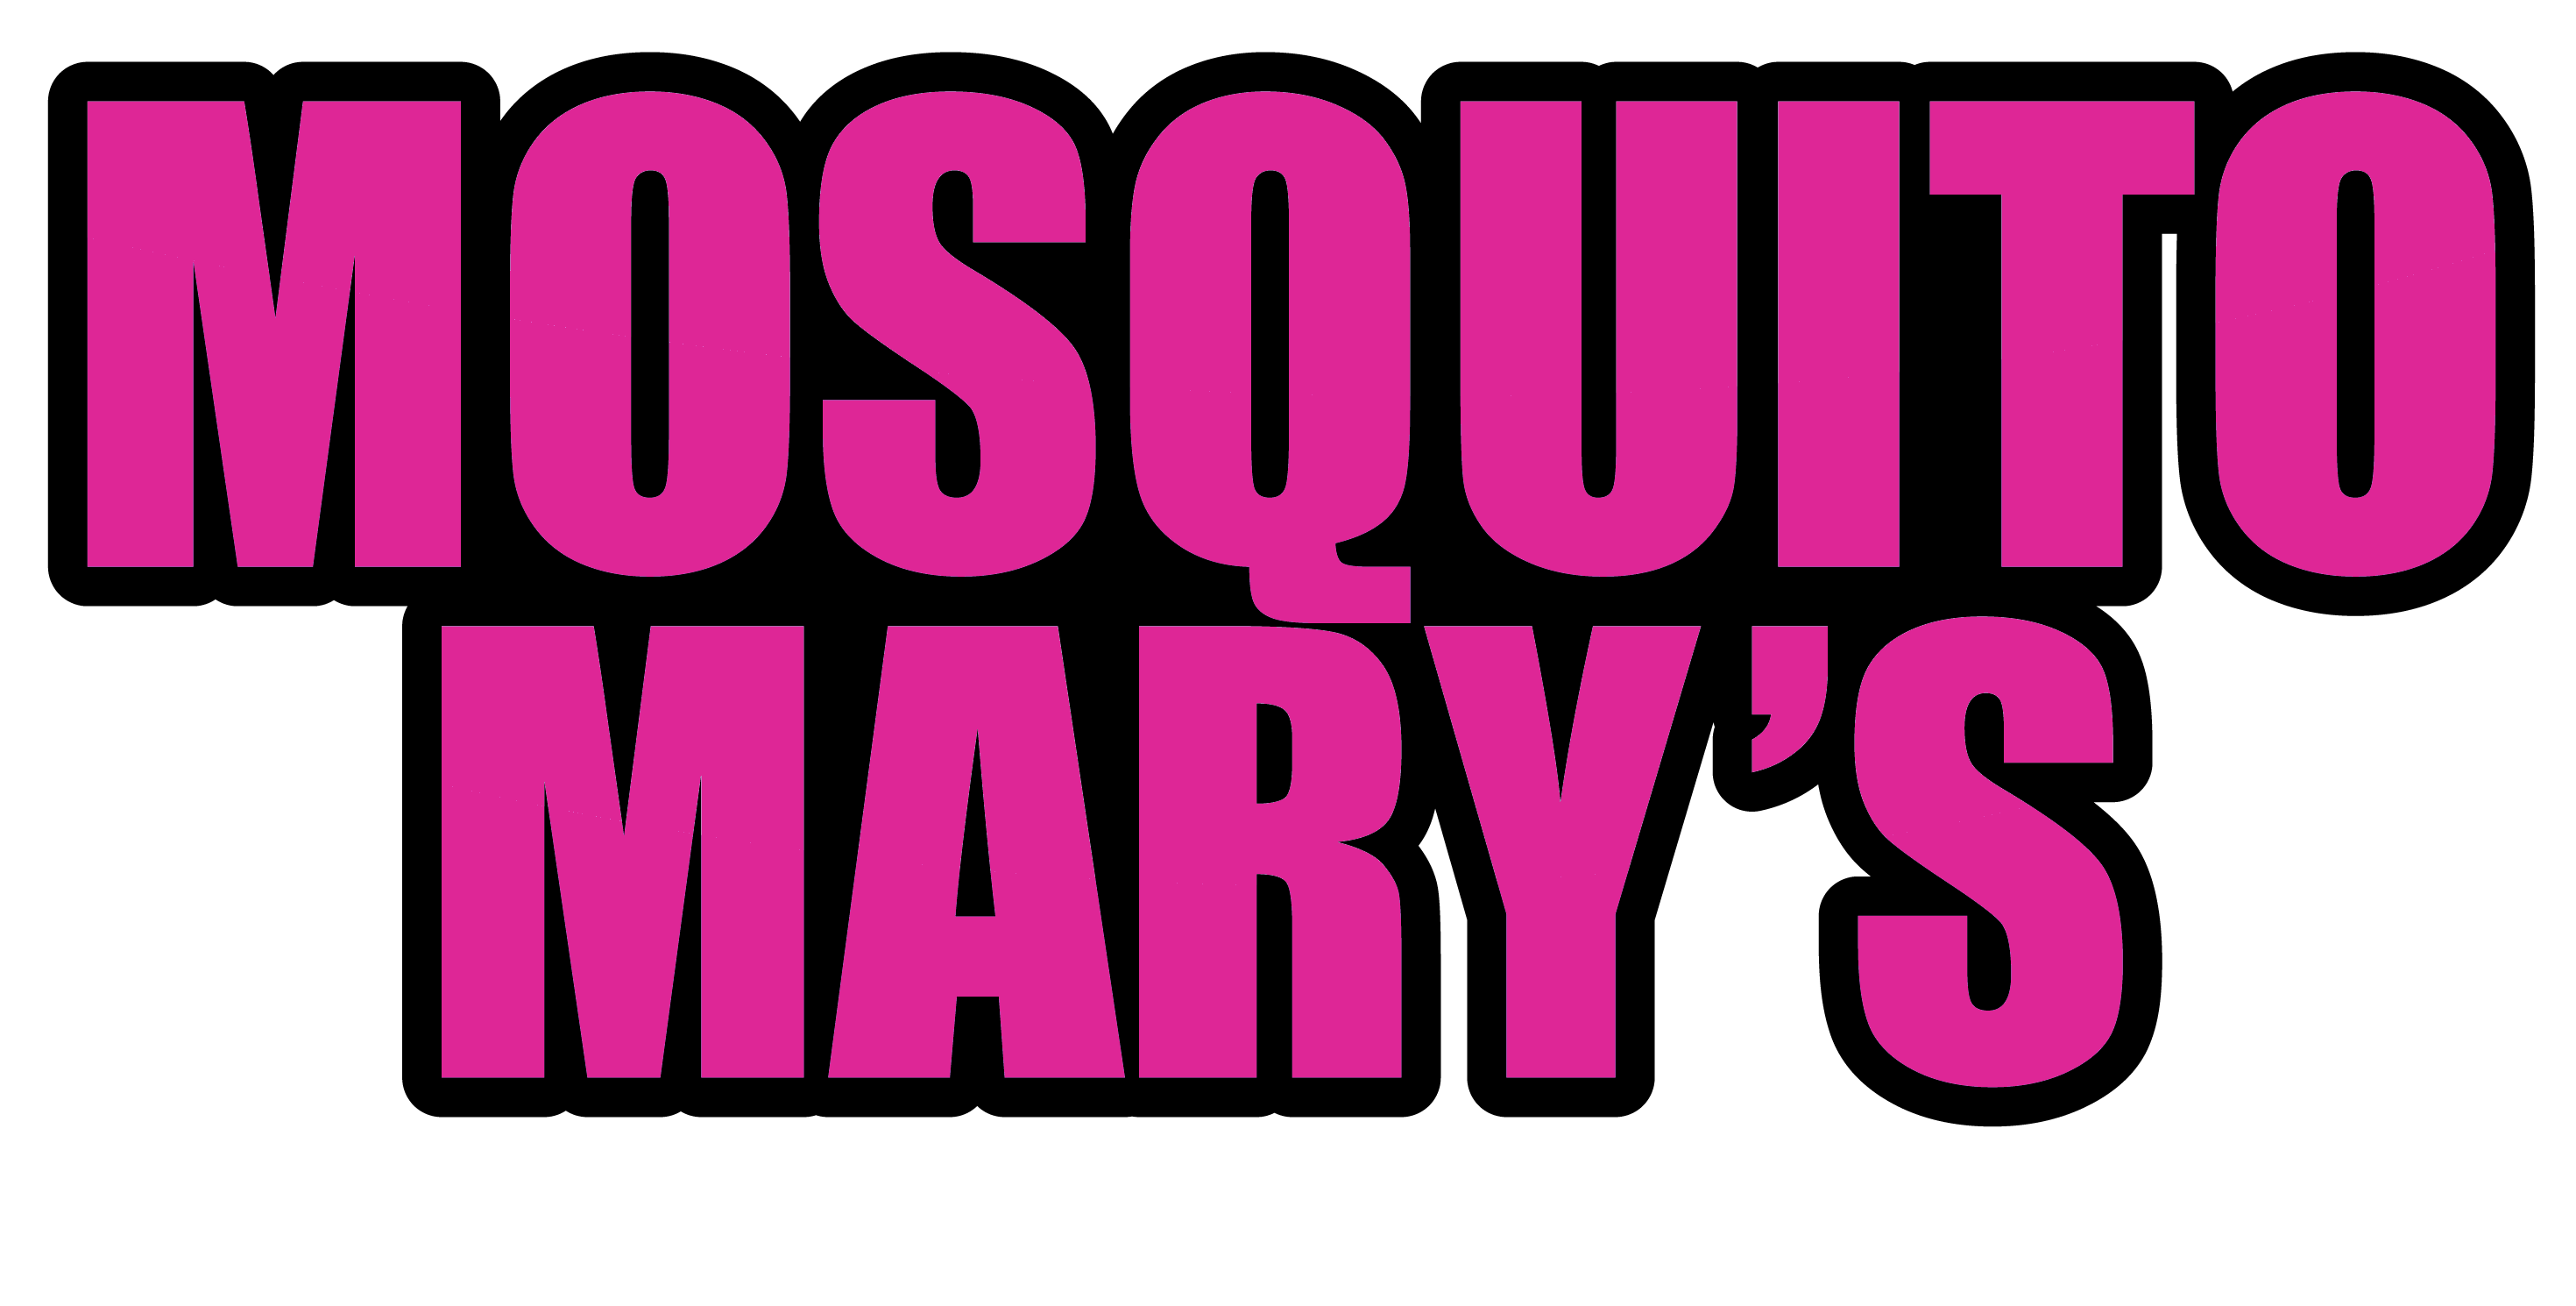 Mosquito Mary's announces franchising opportunities for energetic individuals to help them become their own boss